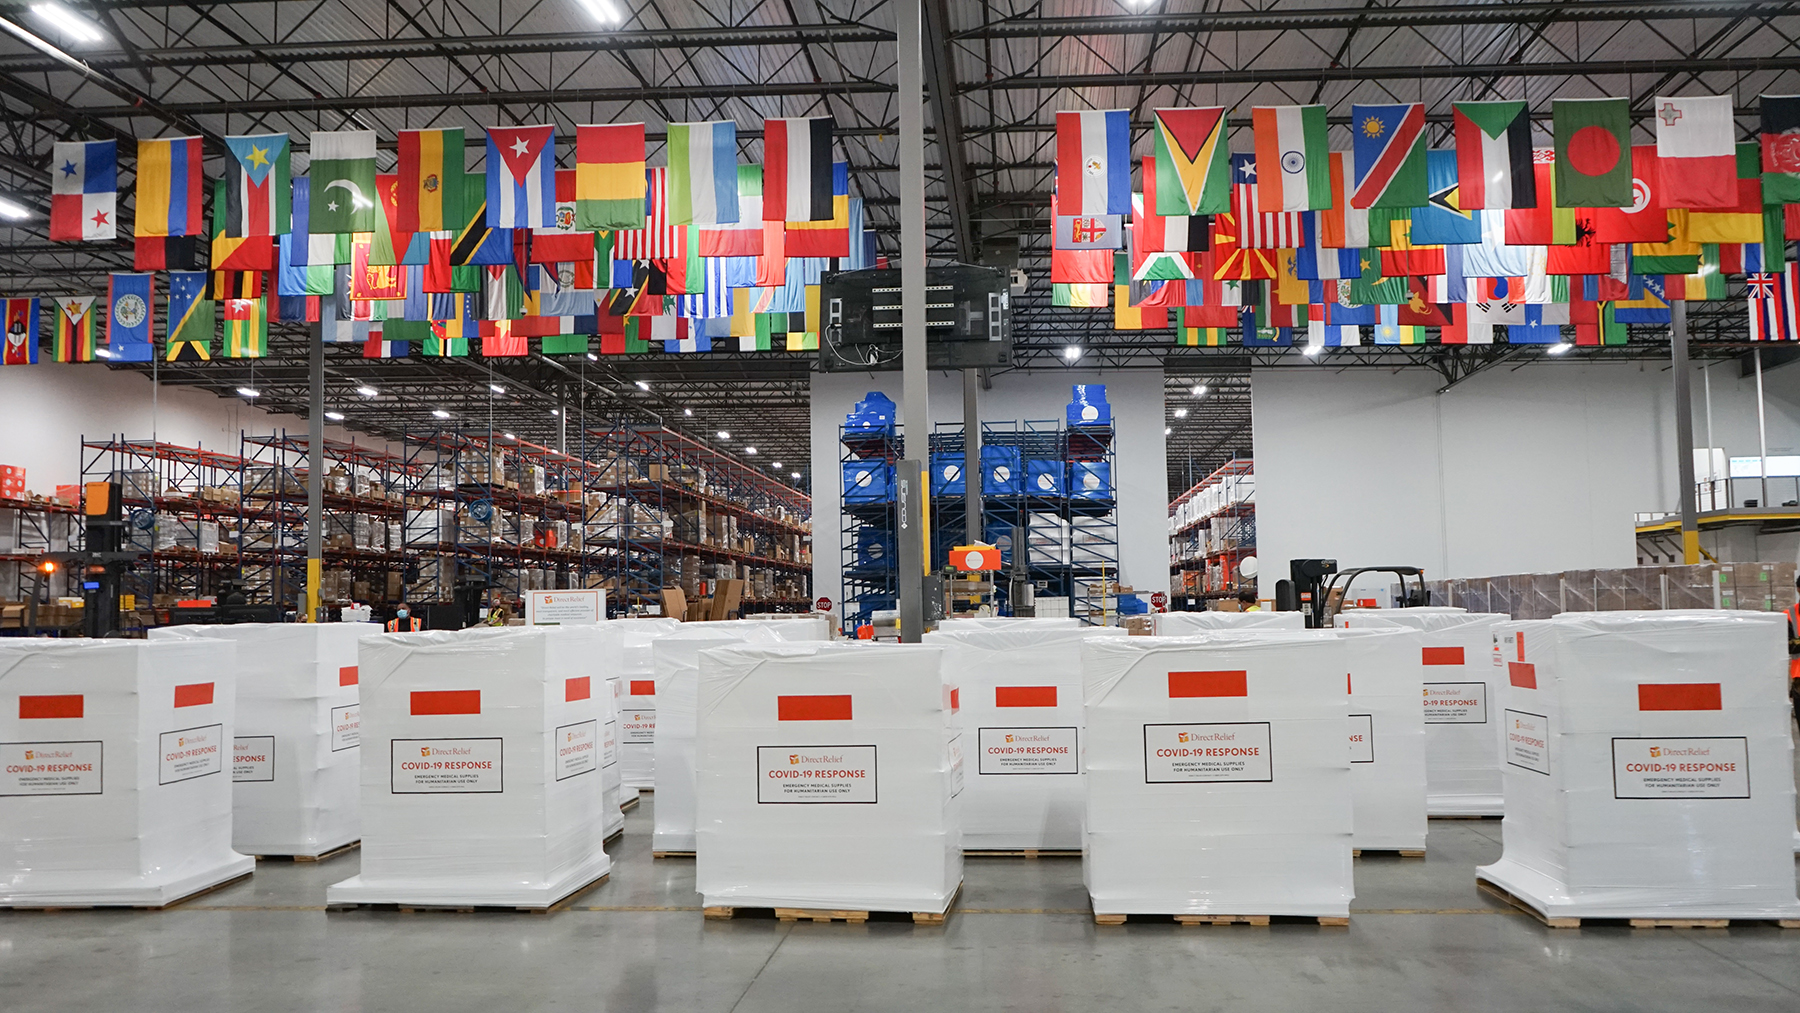 Emergency medical support staged in Direct Relief's warehouse on August 10, 2021. (Maeve O'Connor/Direct Relief)